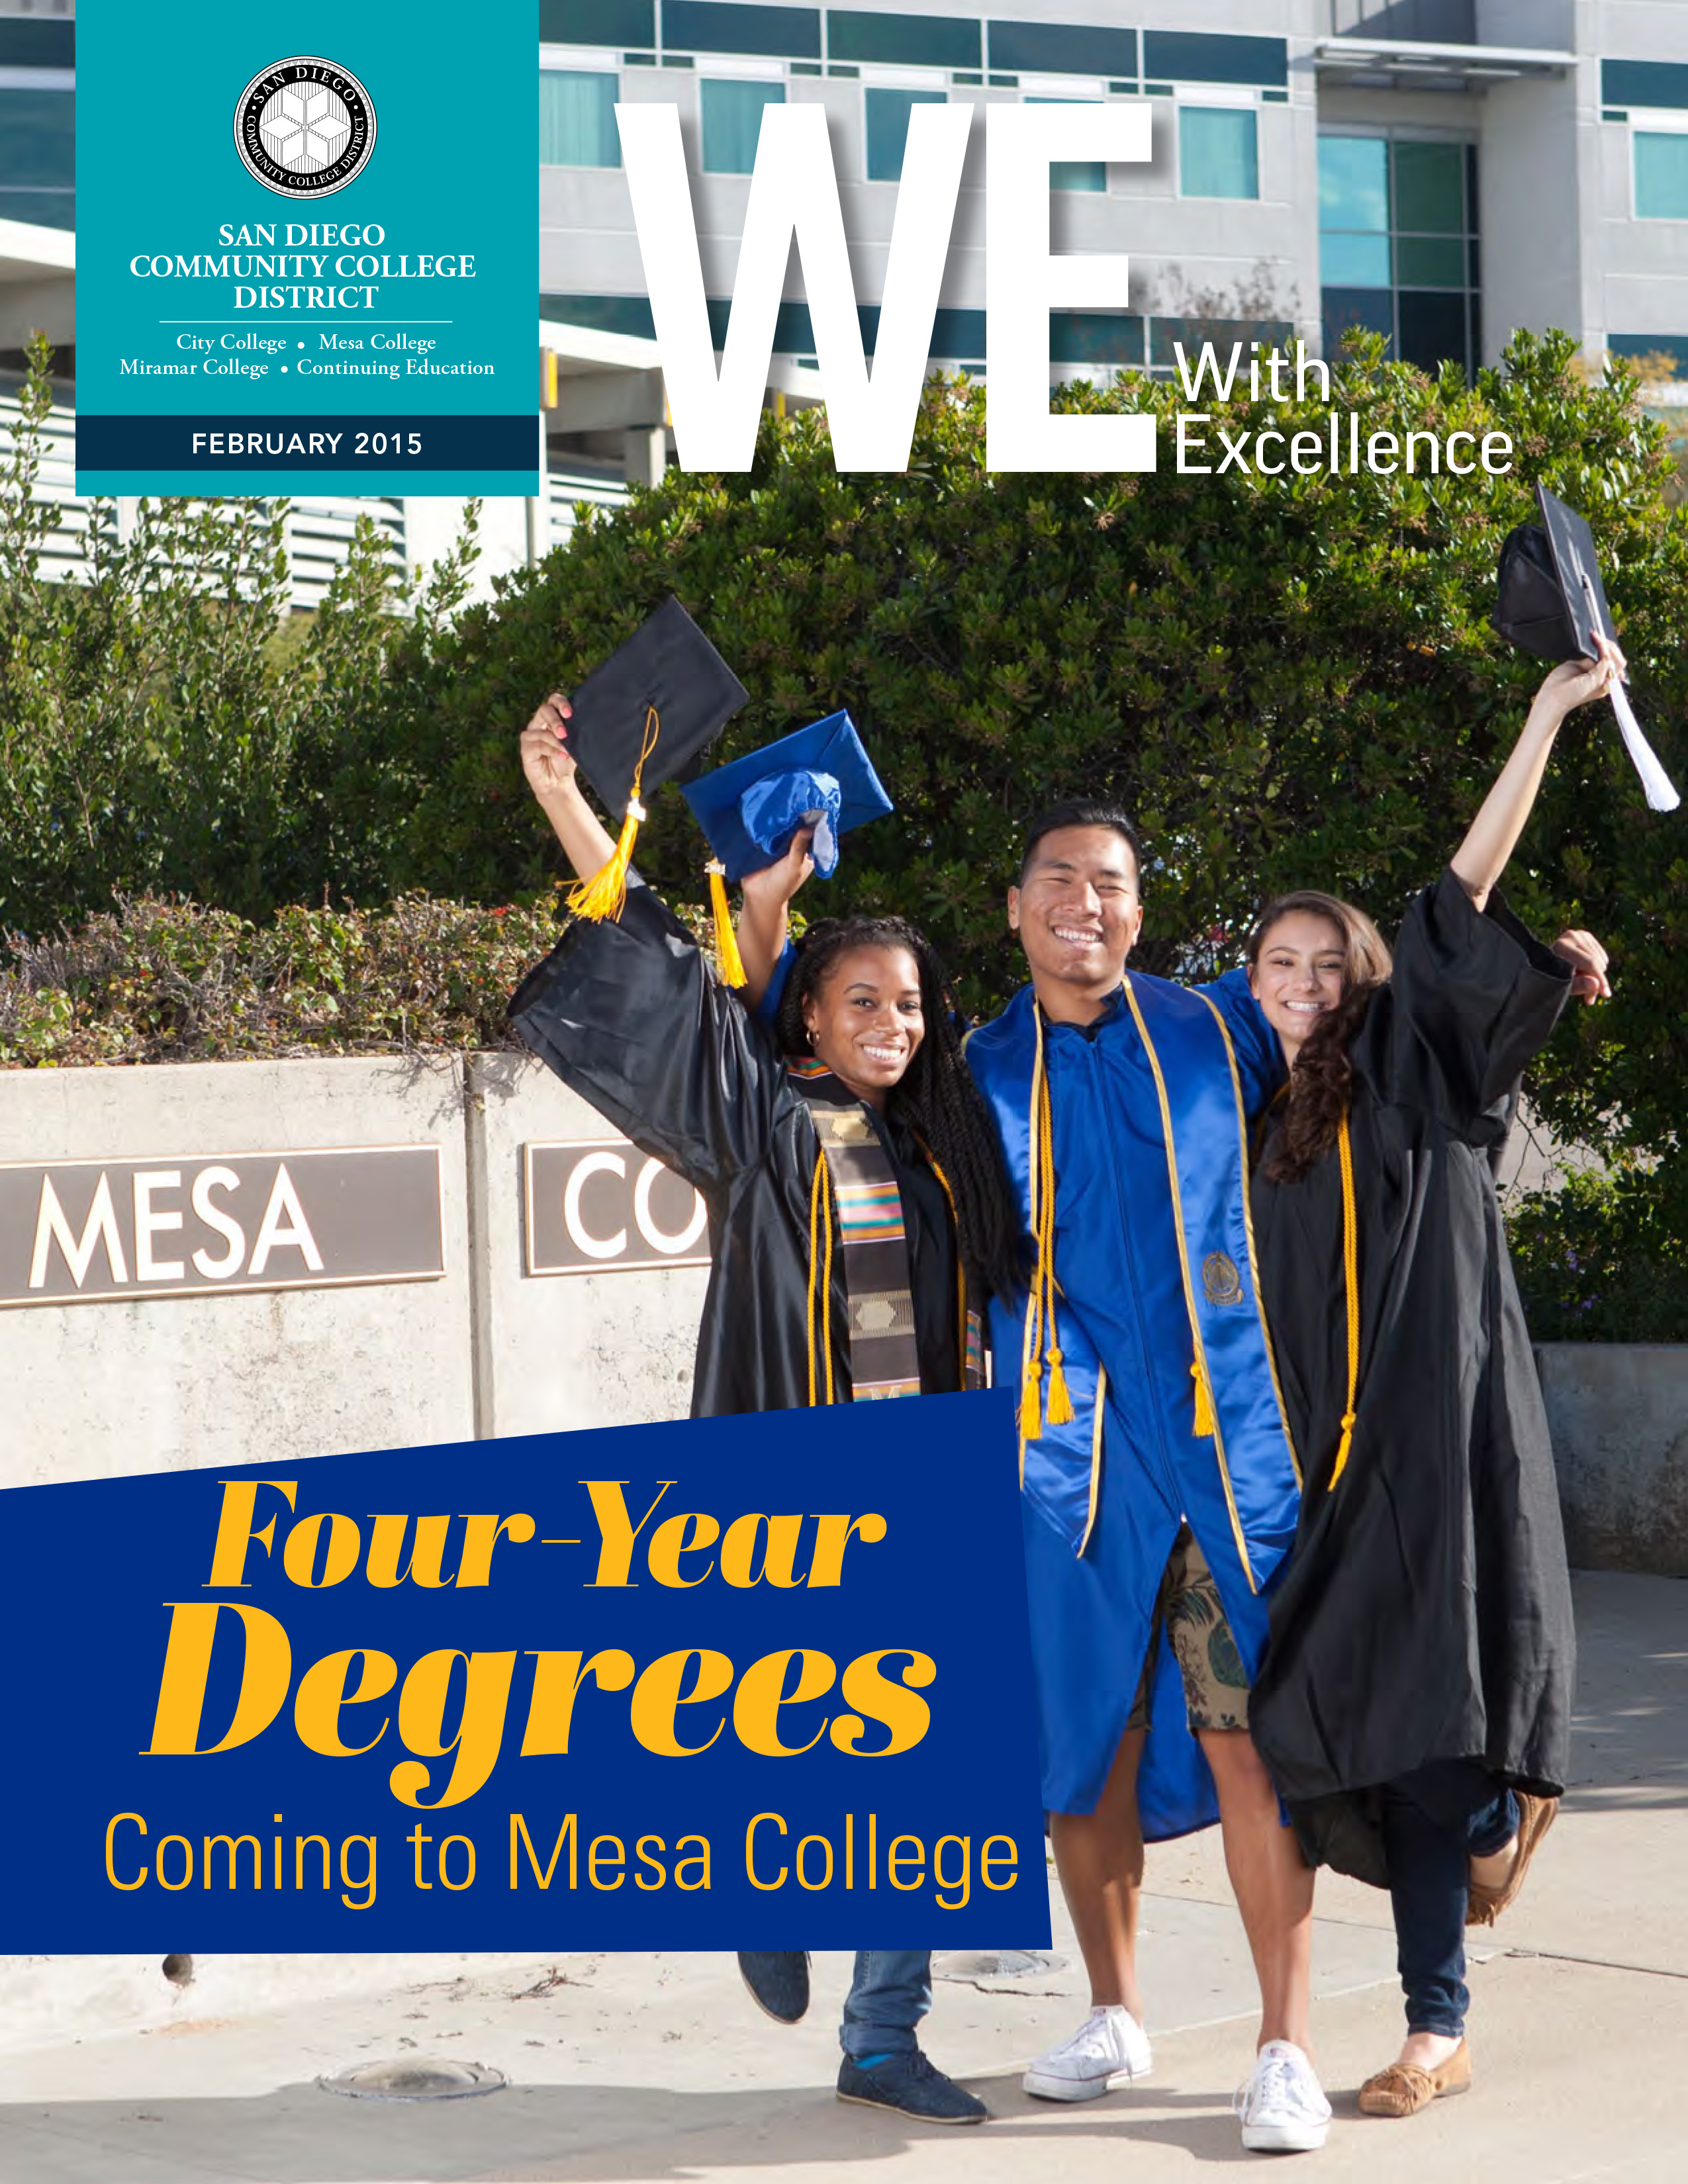 san diego community college district WE magazine